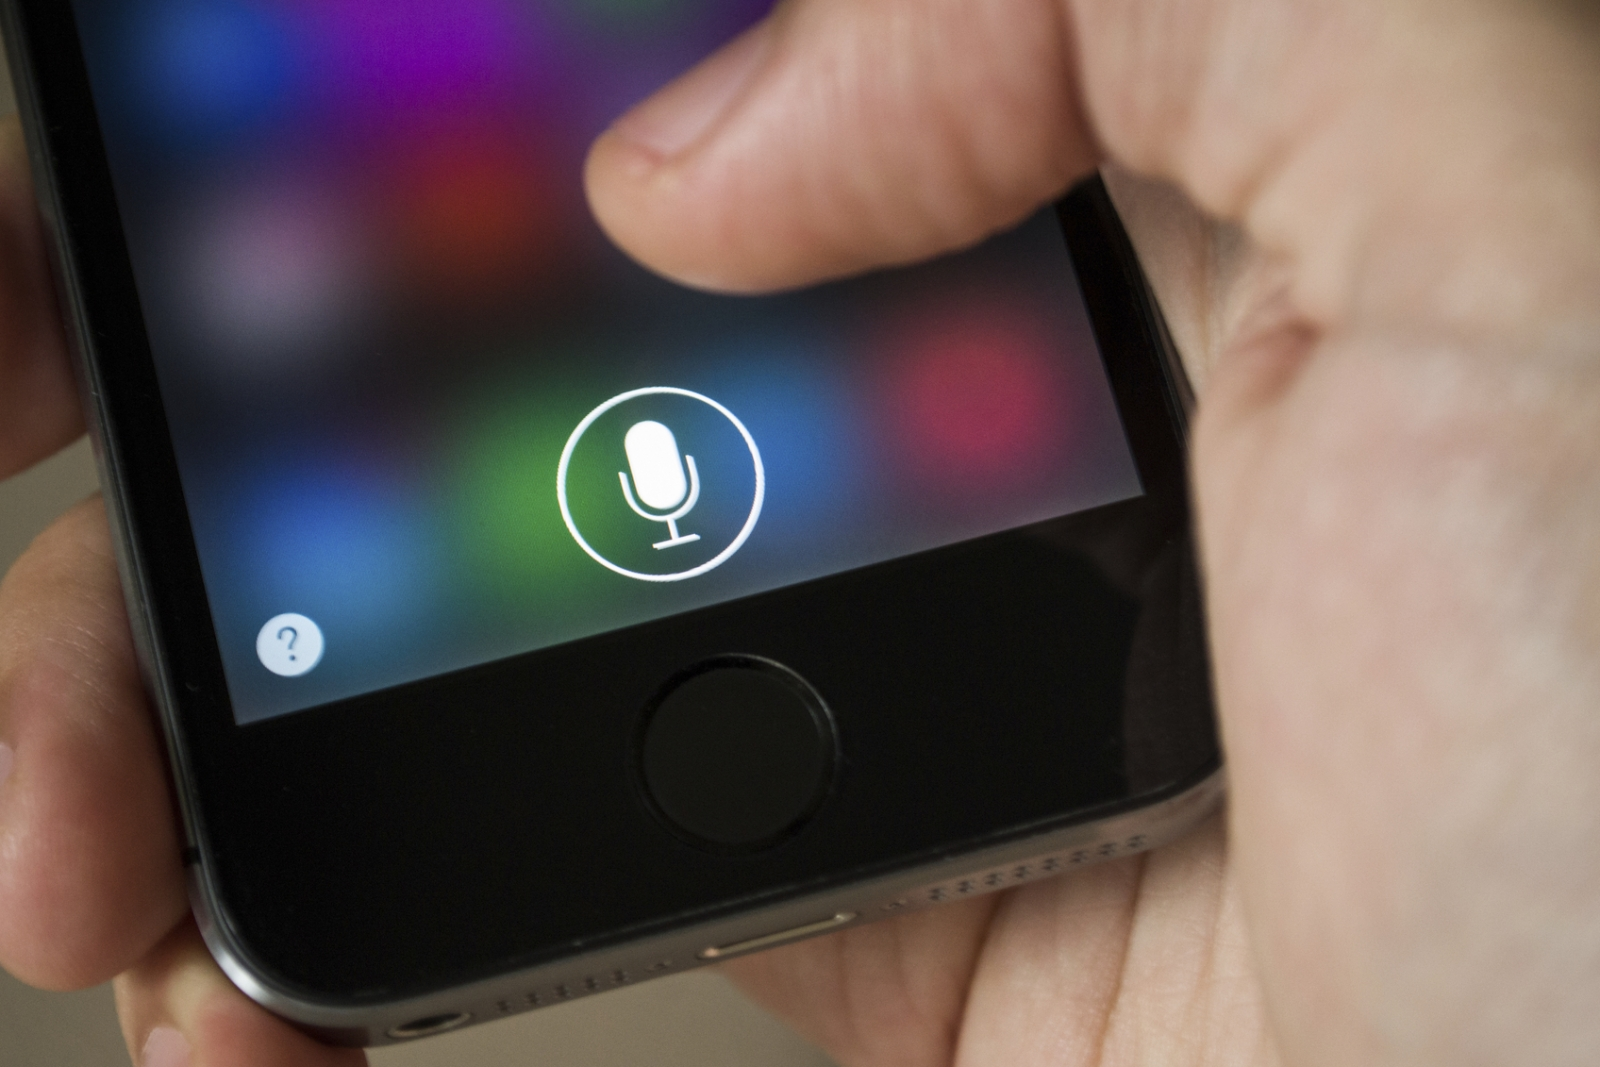 Using the in-built microphone on an iPhone